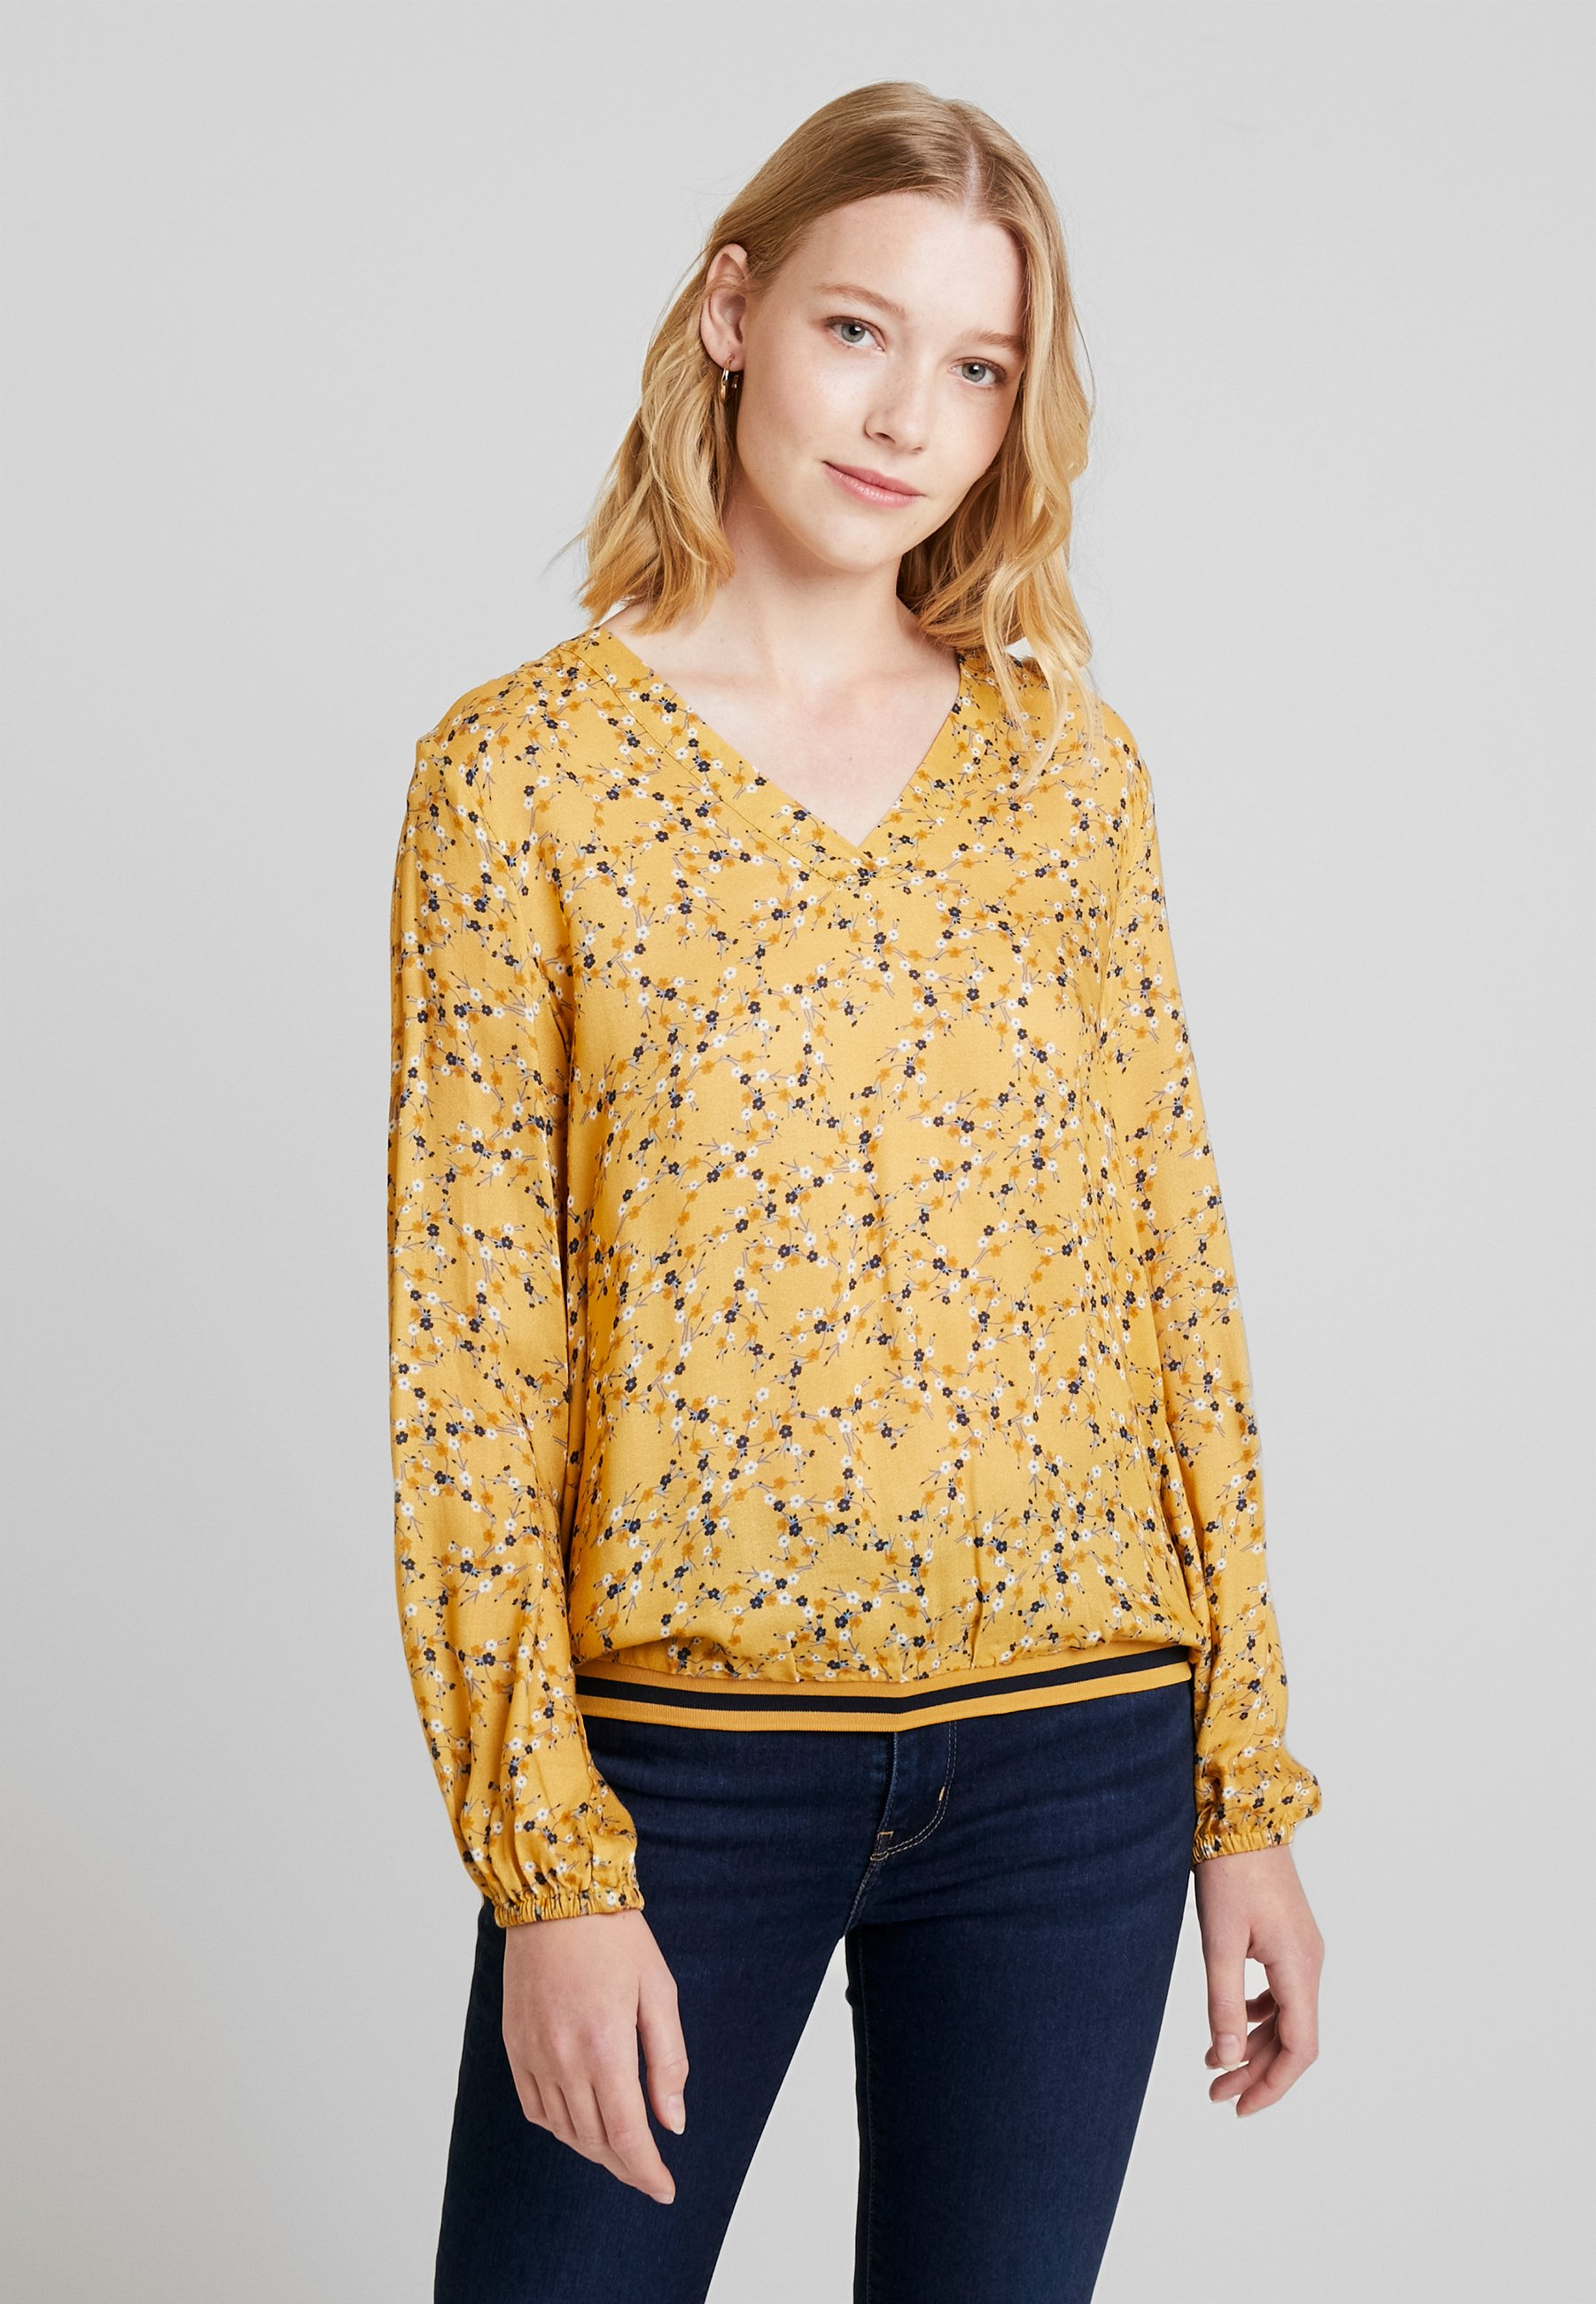 yellow FLUENTBlouse by edc honey Esprit 0wyvNnPm8O